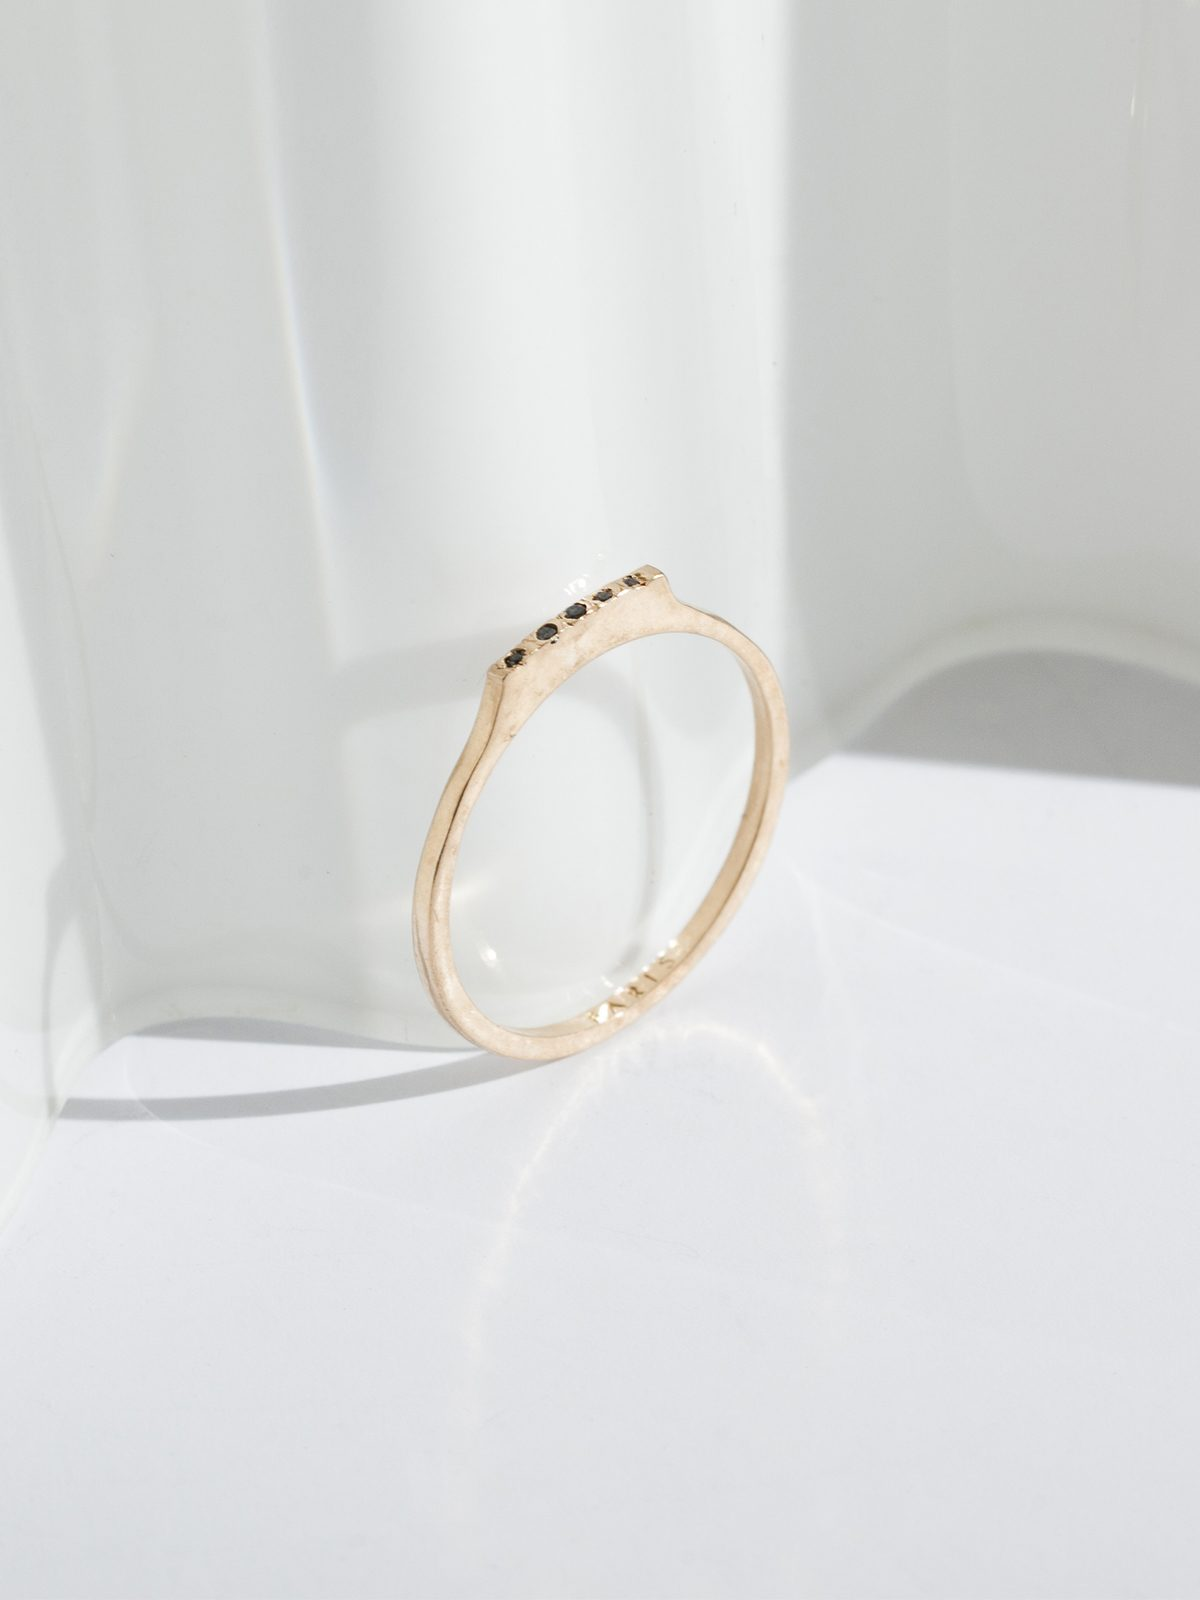 RANGE V Ring by F A R I S